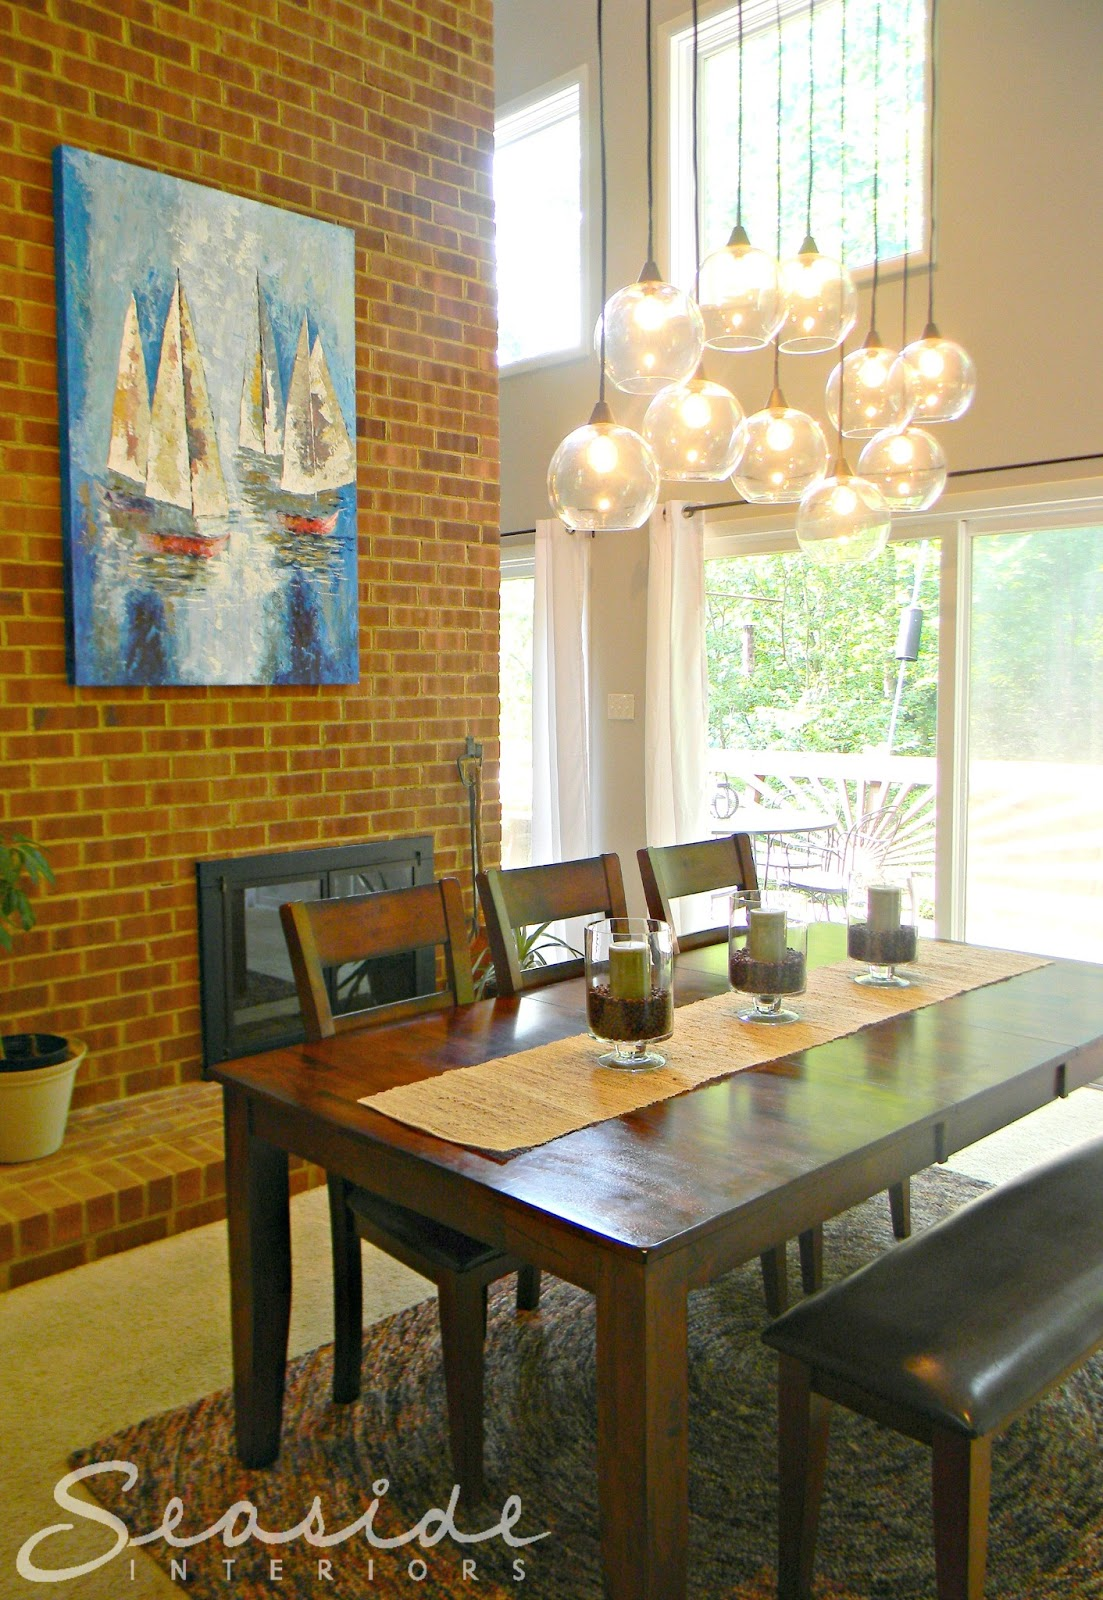 Astounding Seaside Interiors Dining Room Design Makeover Using The Cb2 Caraccident5 Cool Chair Designs And Ideas Caraccident5Info